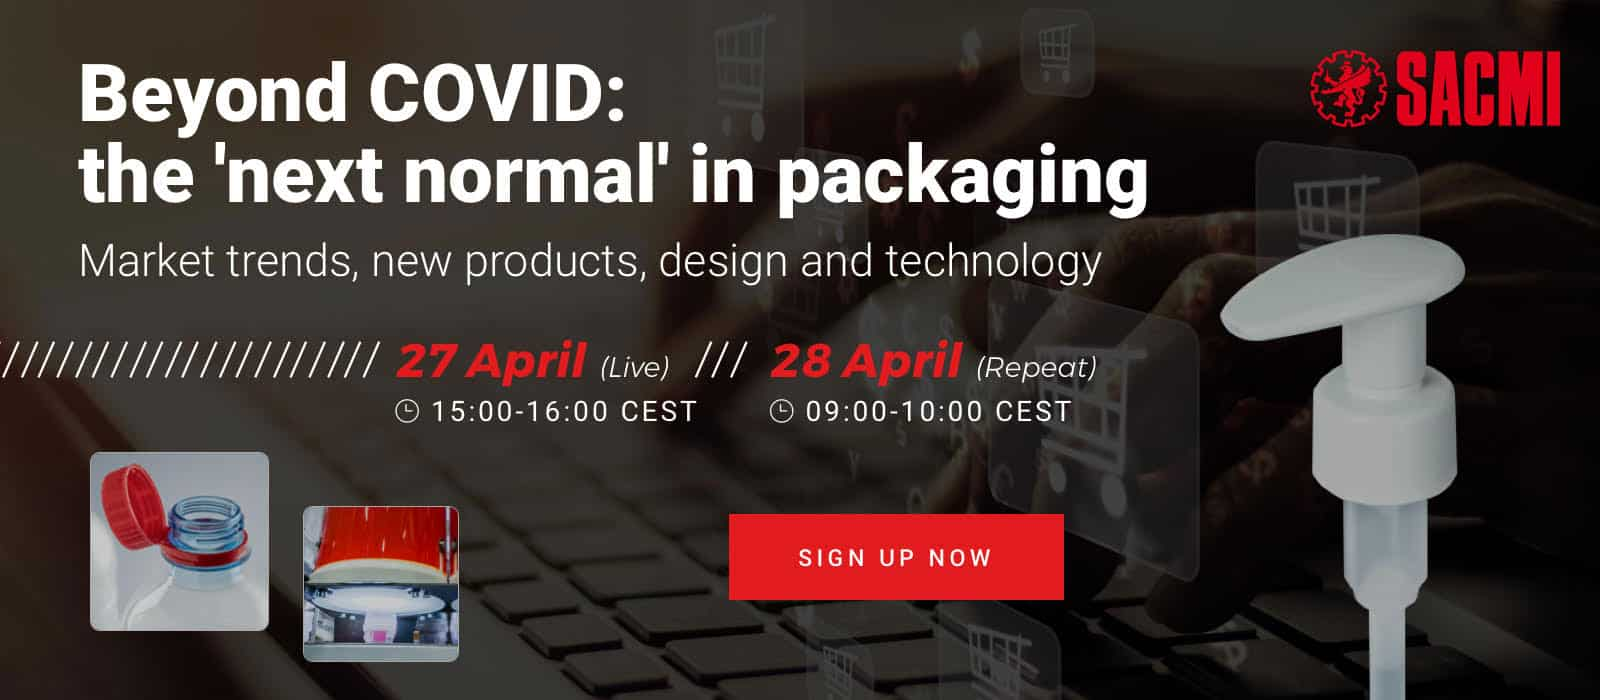 """SACMI Webinar on """"Beyond COVID - The Next Normal in Packaging"""" 27 April 2021"""